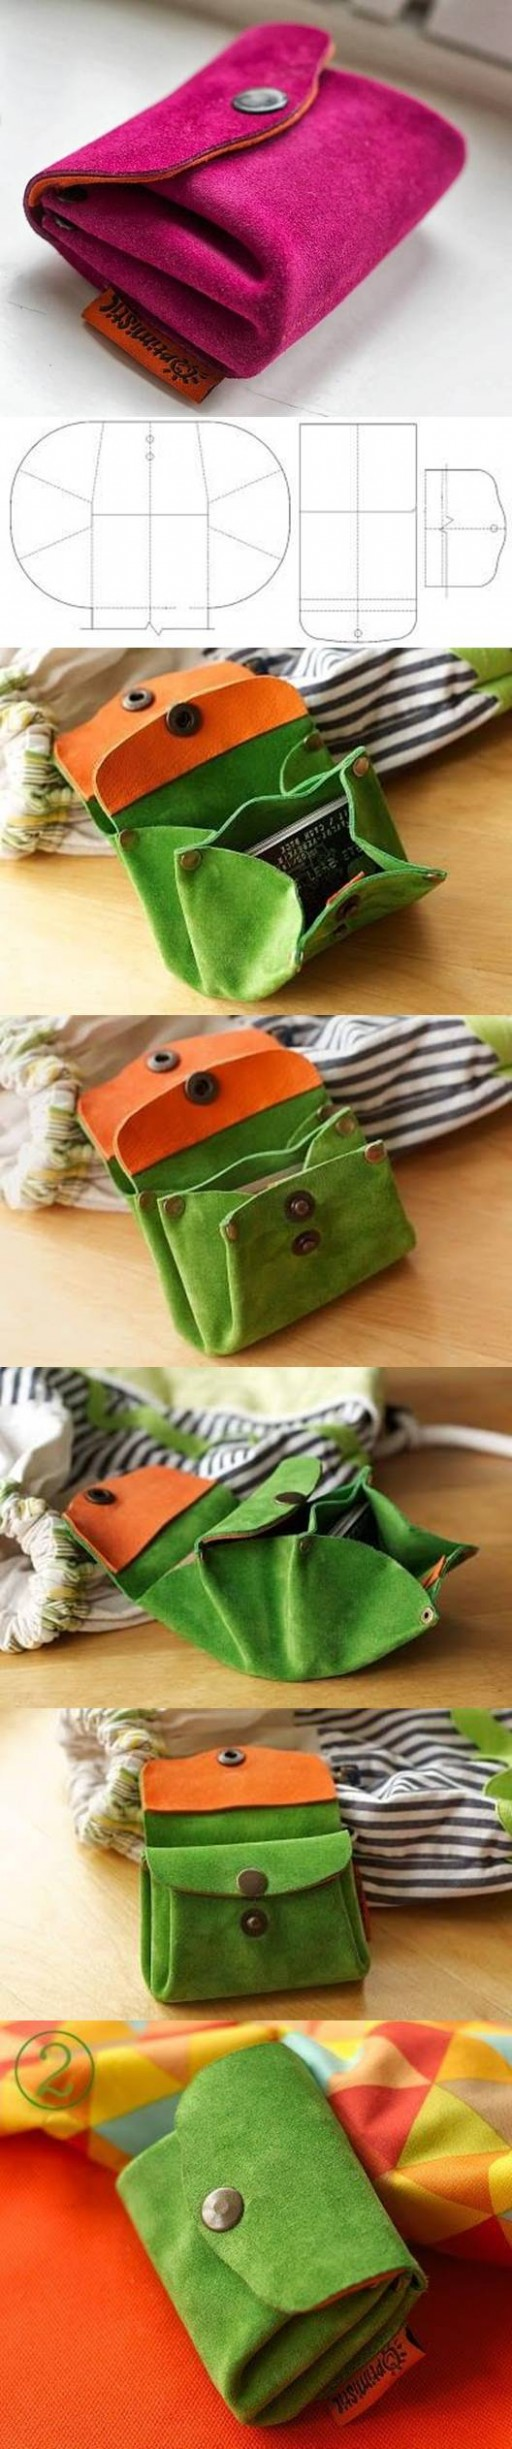 How to make Plump Purse DIY tutorial instructions